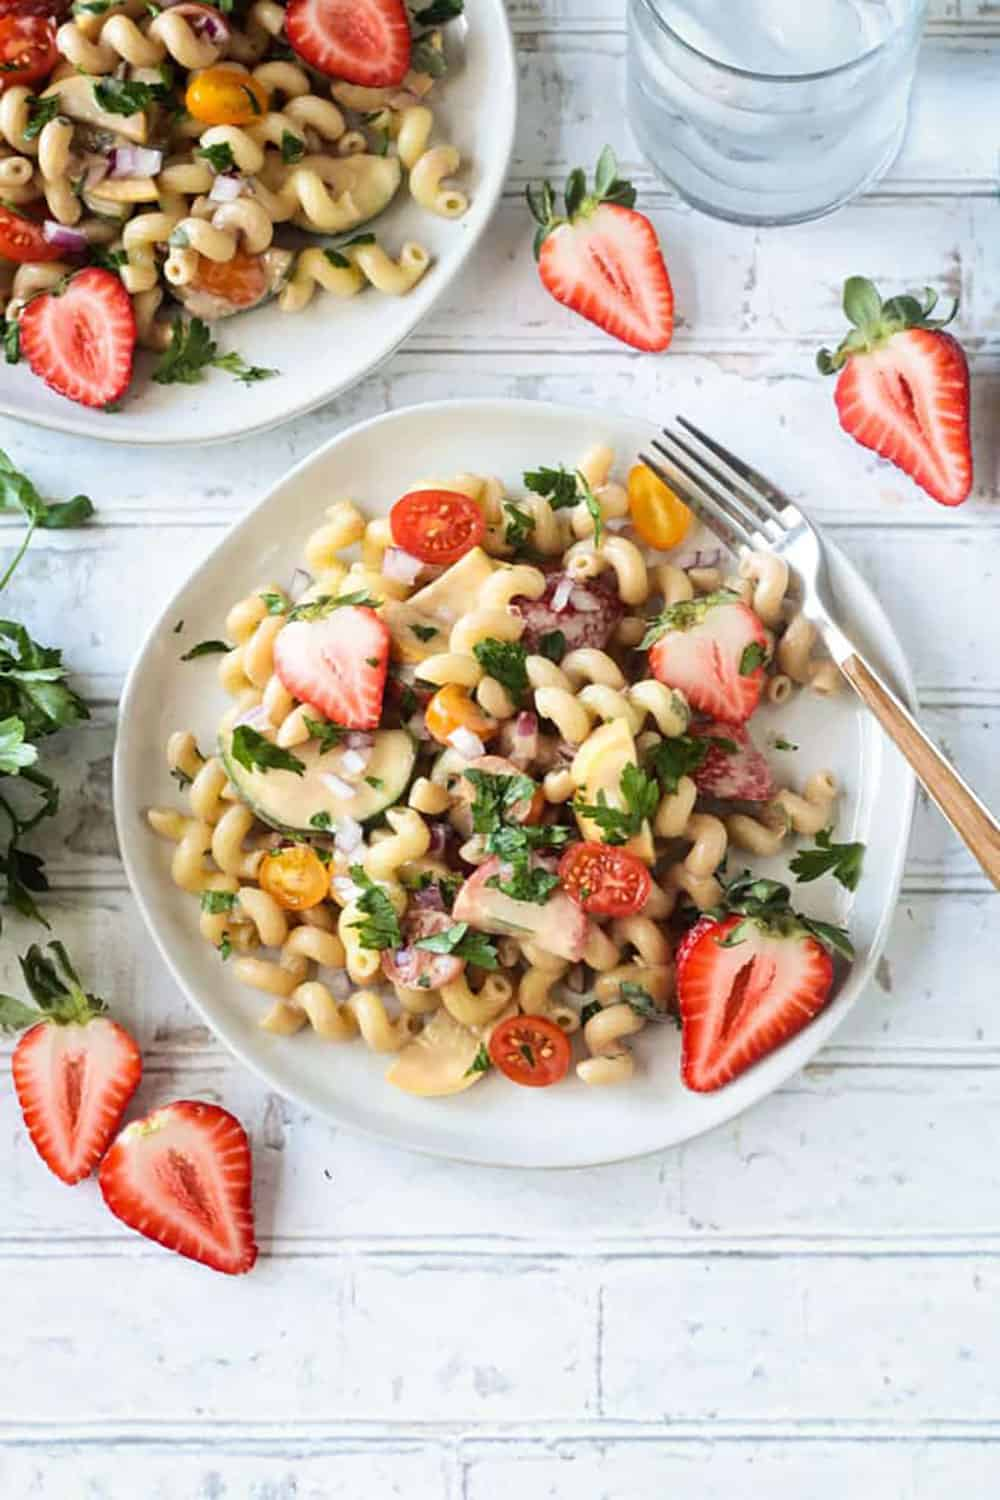 Balsamic Summer Pasta Salad with strawberries, olives, tomatoes